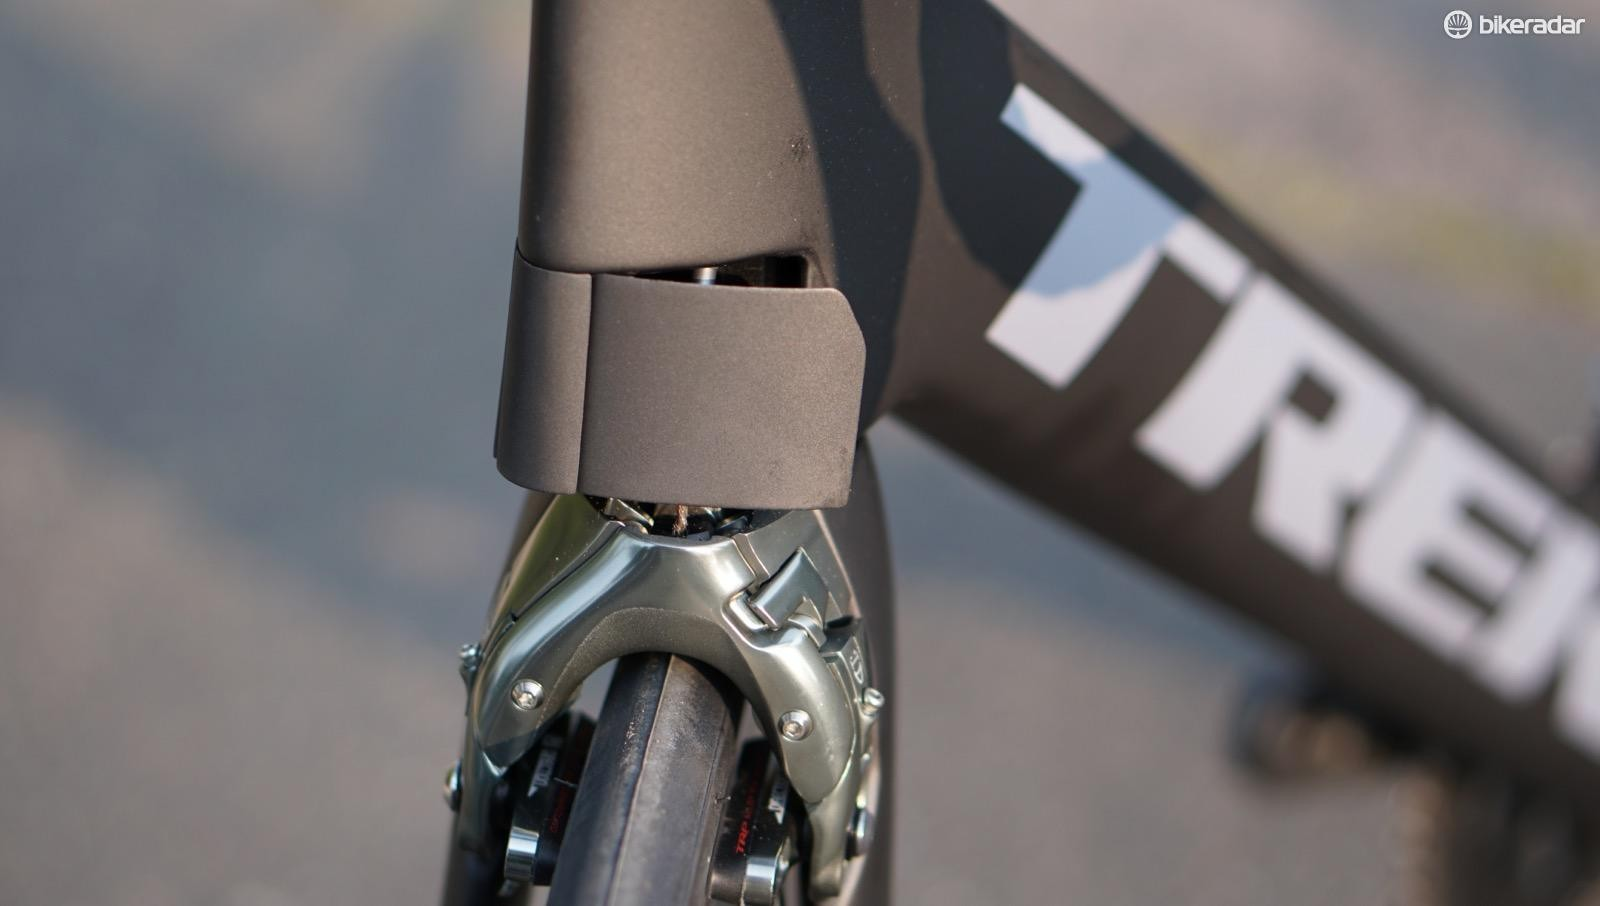 The head tube has cuckoo-clock-like panels that hide the upper portion of the integrated caliper